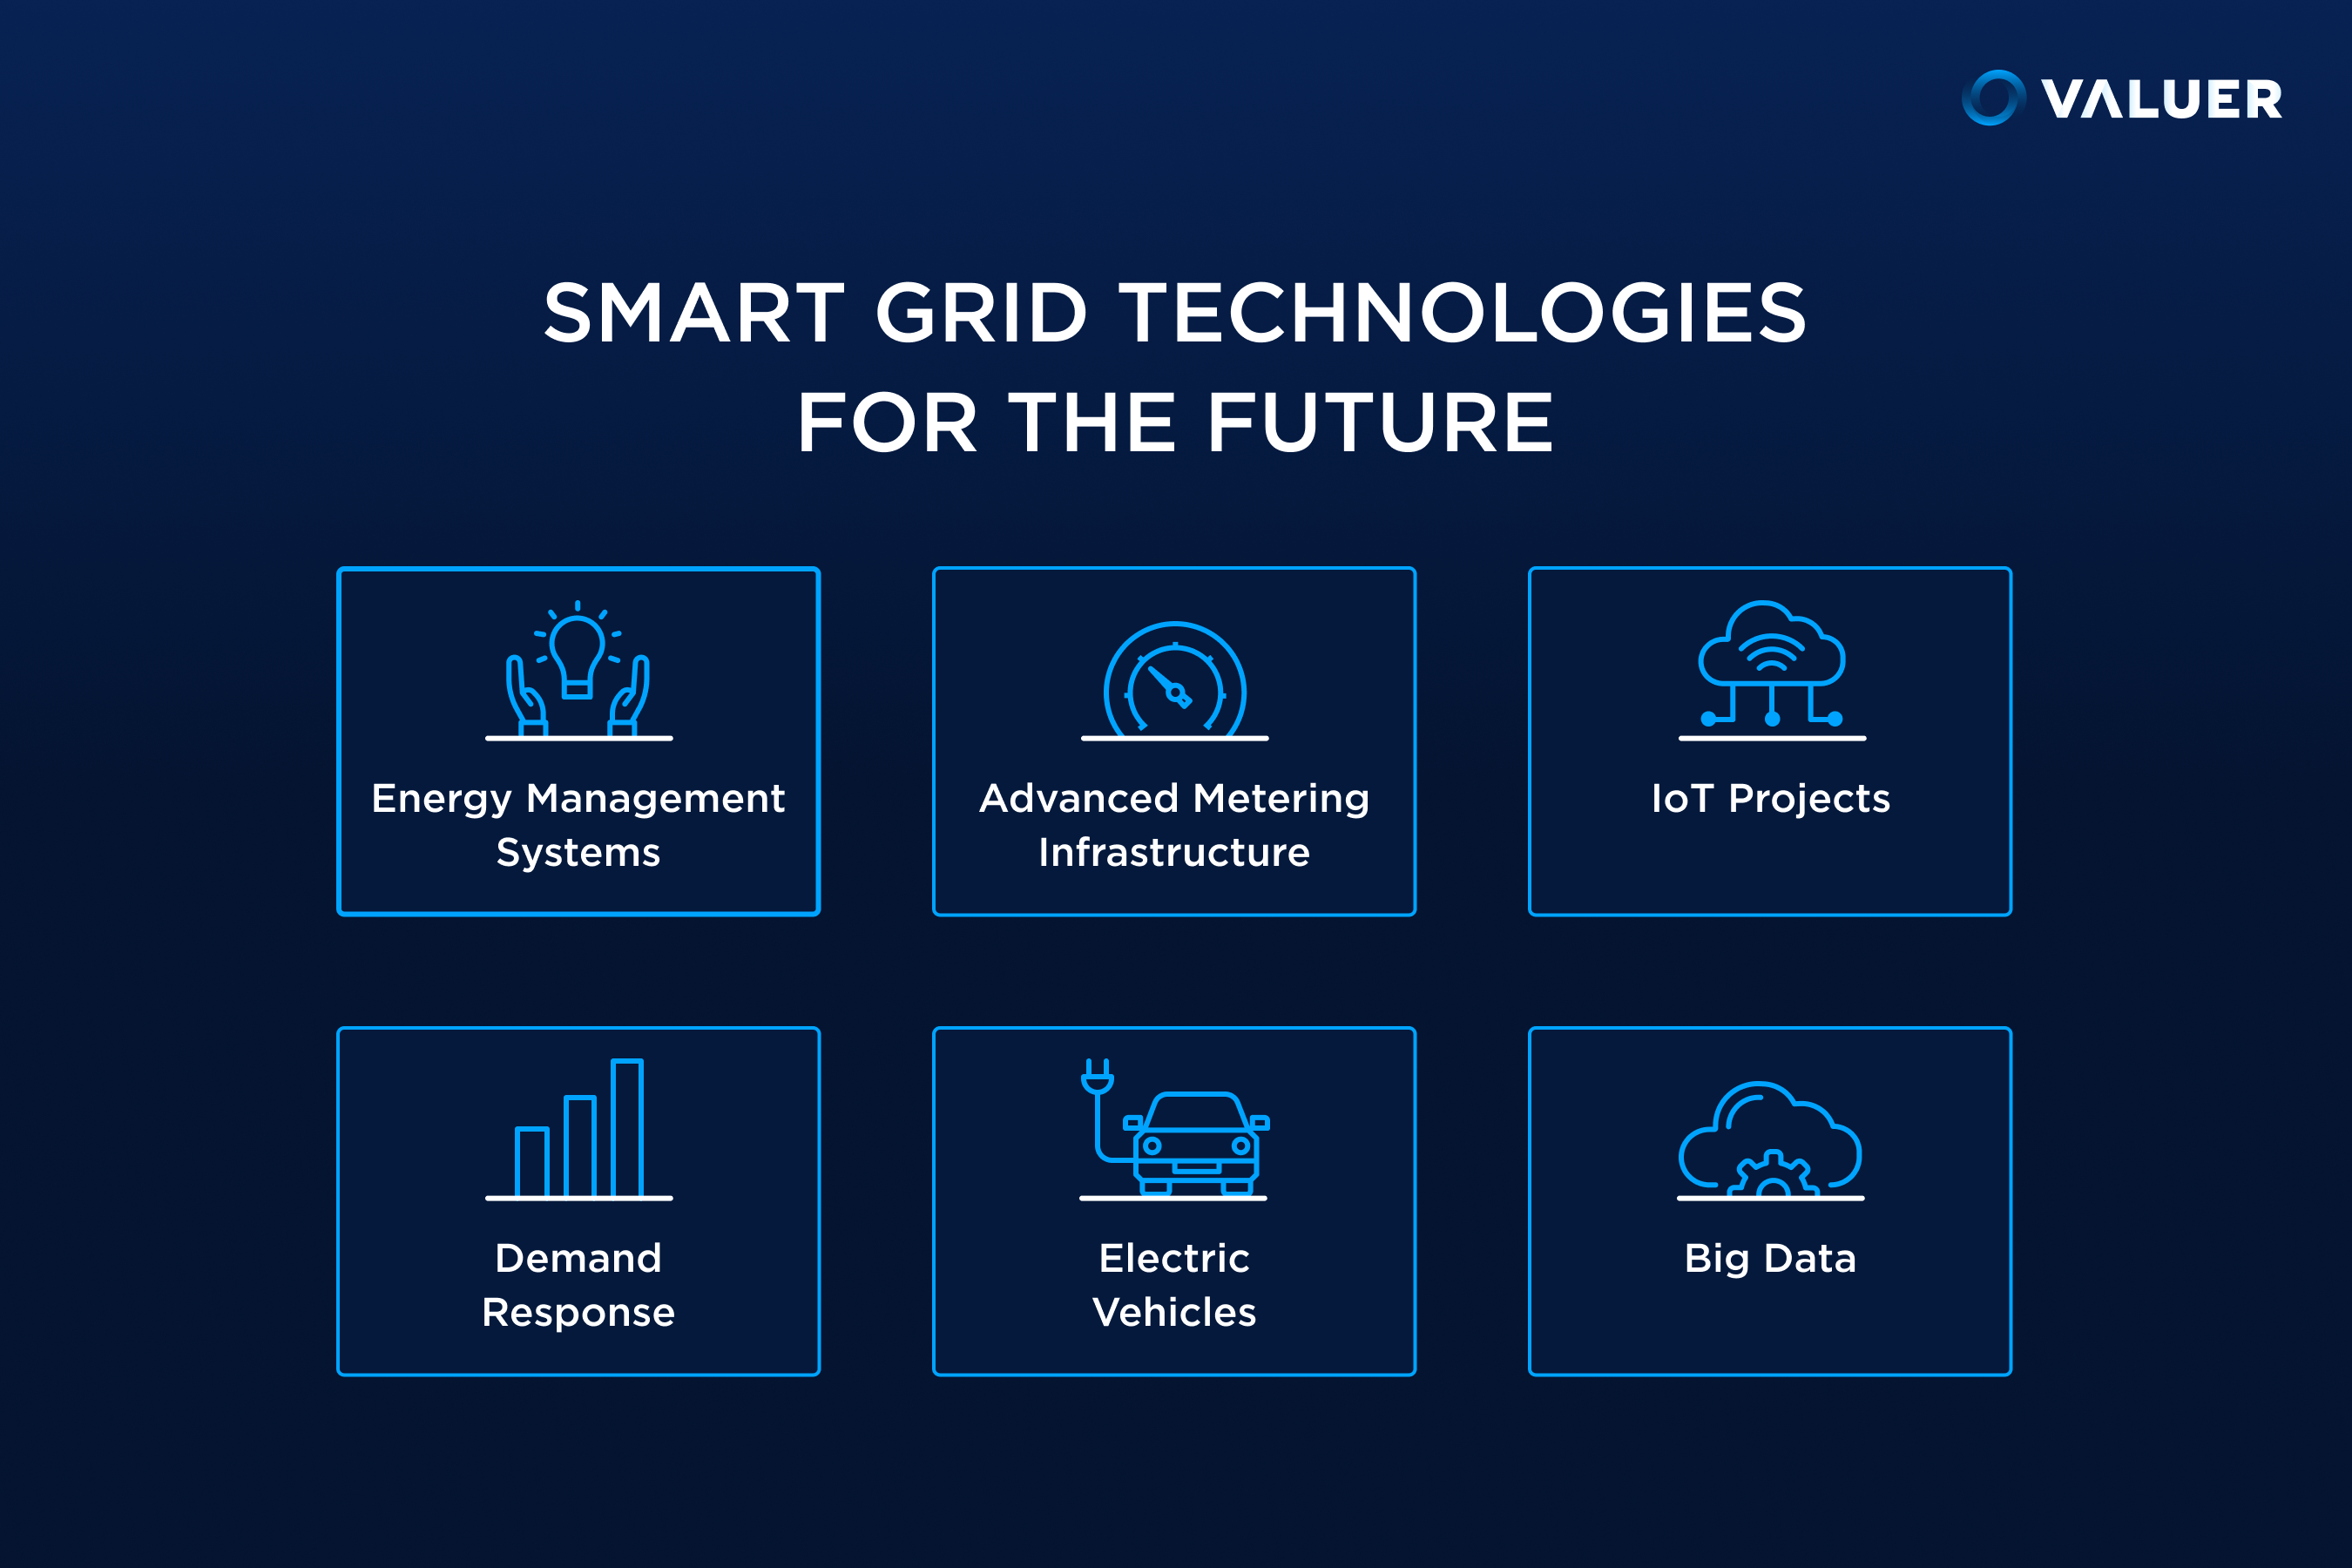 Smart Grid Technologies for the Future